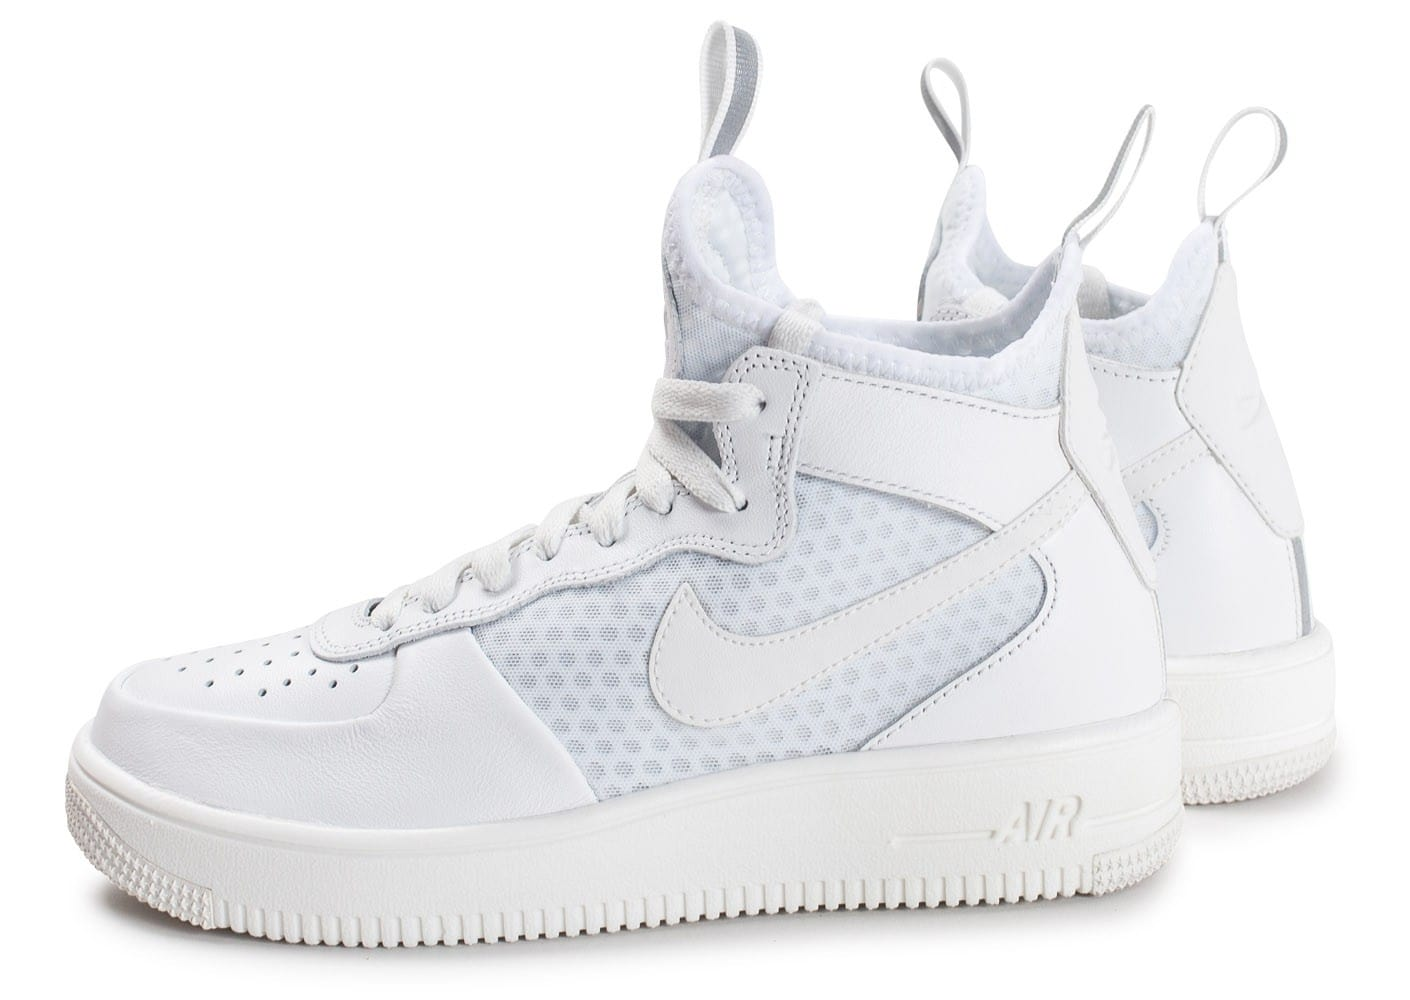 Nike Air Force 1 UltraForce Mid blanche Chaussures Baskets